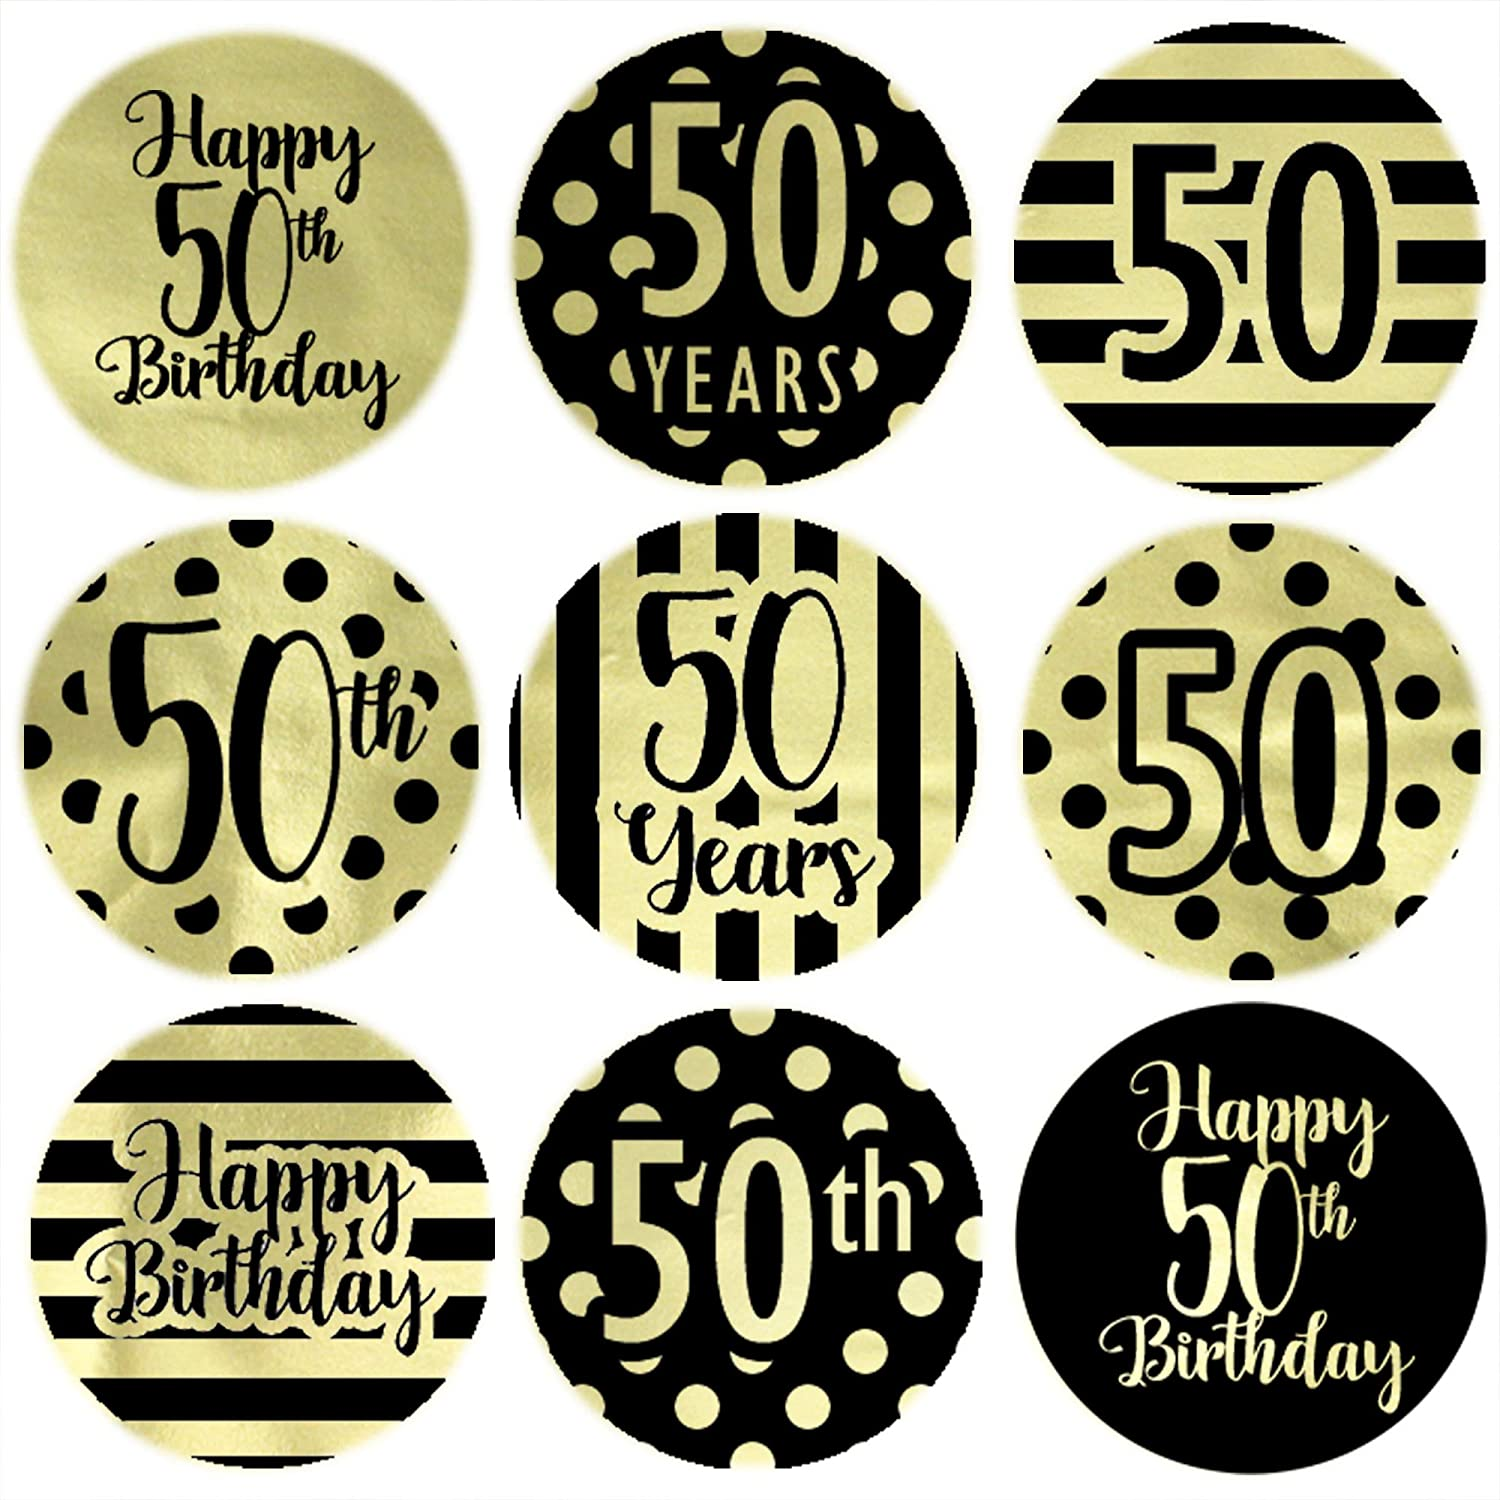 Black and Gold 50th Birthday Party Favor Stickers - Shiny Foil - 180 Labels